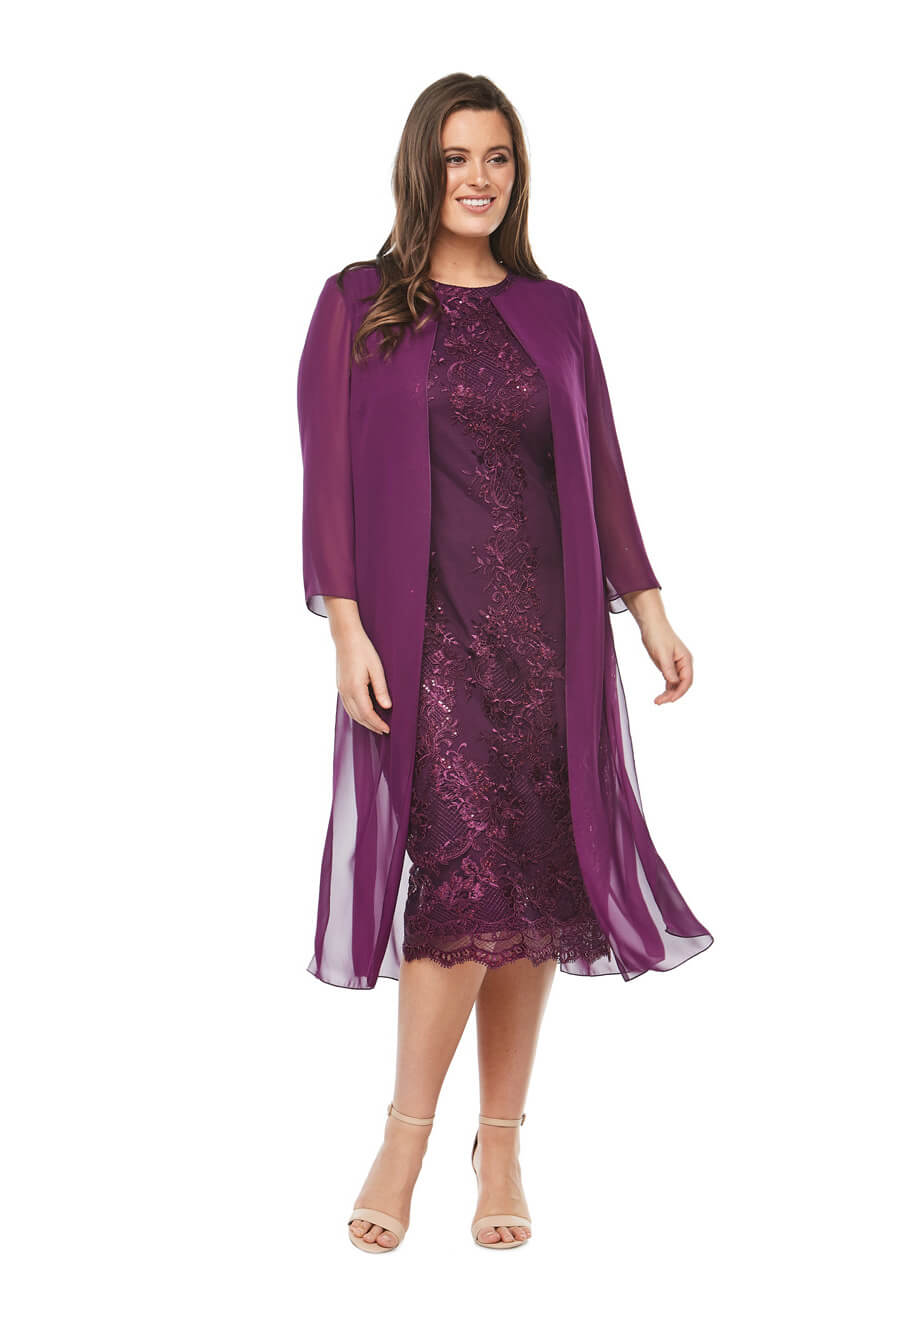 embroidered cocktaildress with 3/4 length chiffon jacket